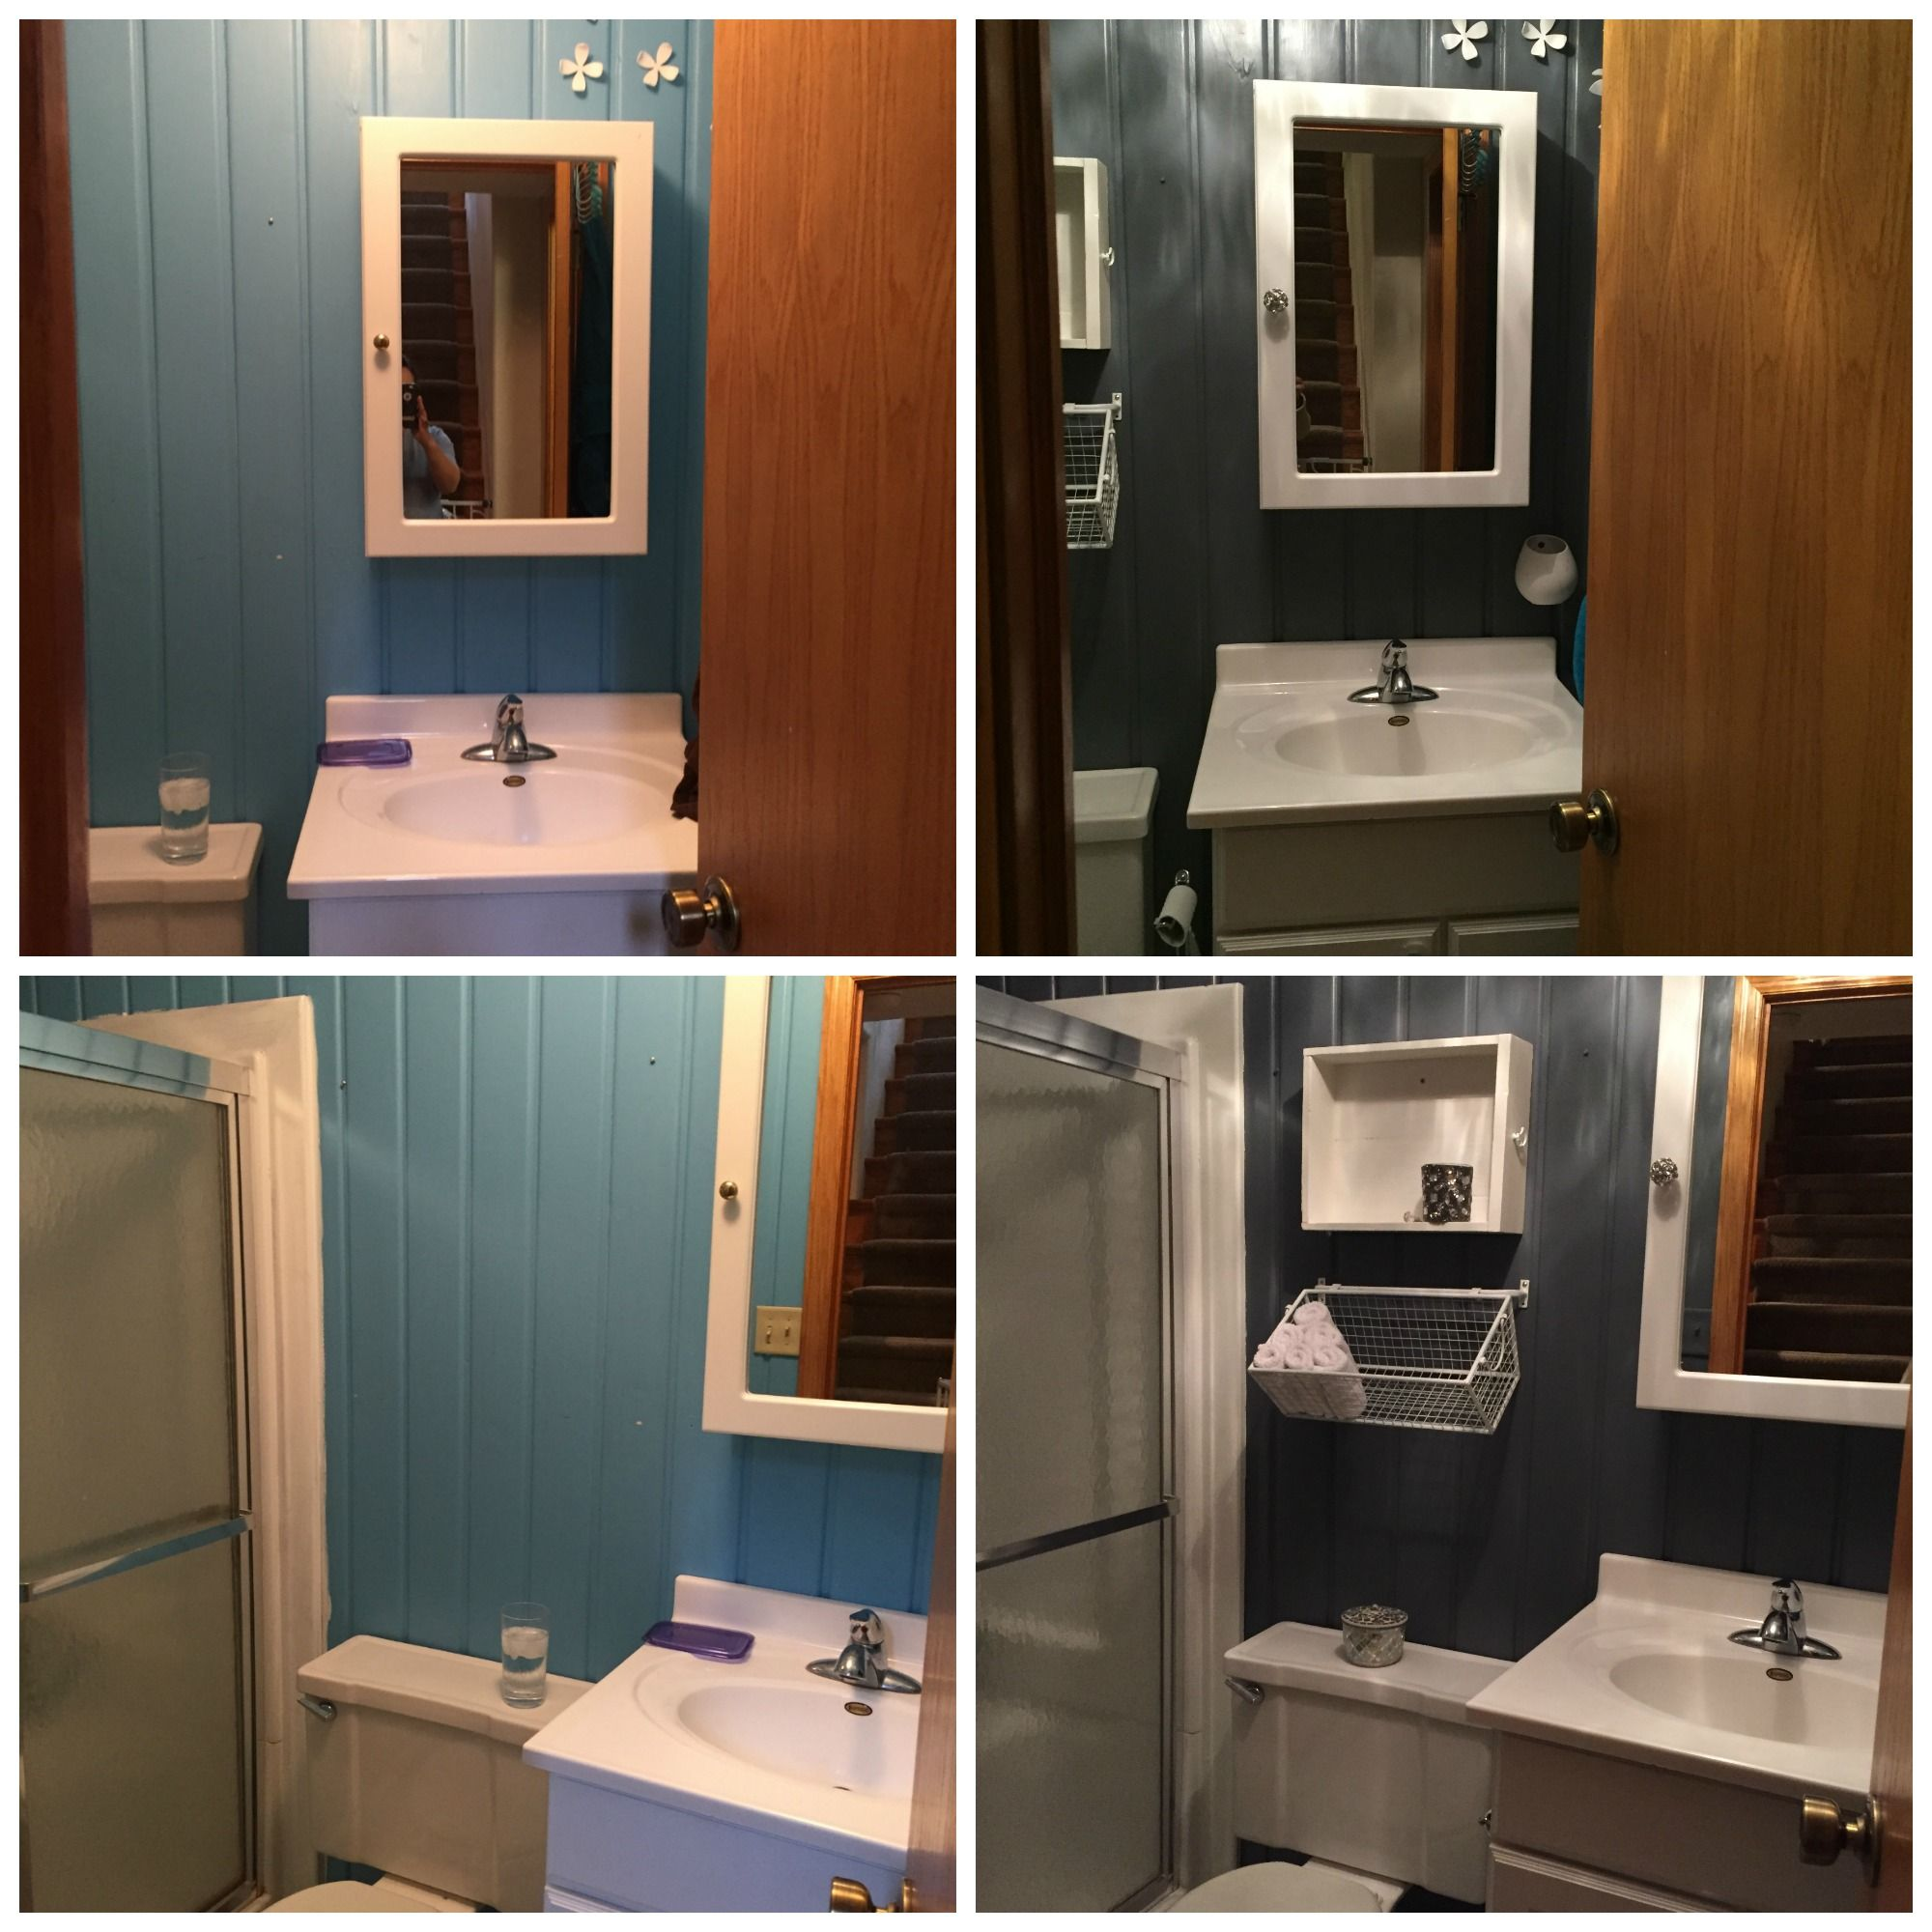 Bathroom Before And After (Soul Interiors, Bismarck, ND)